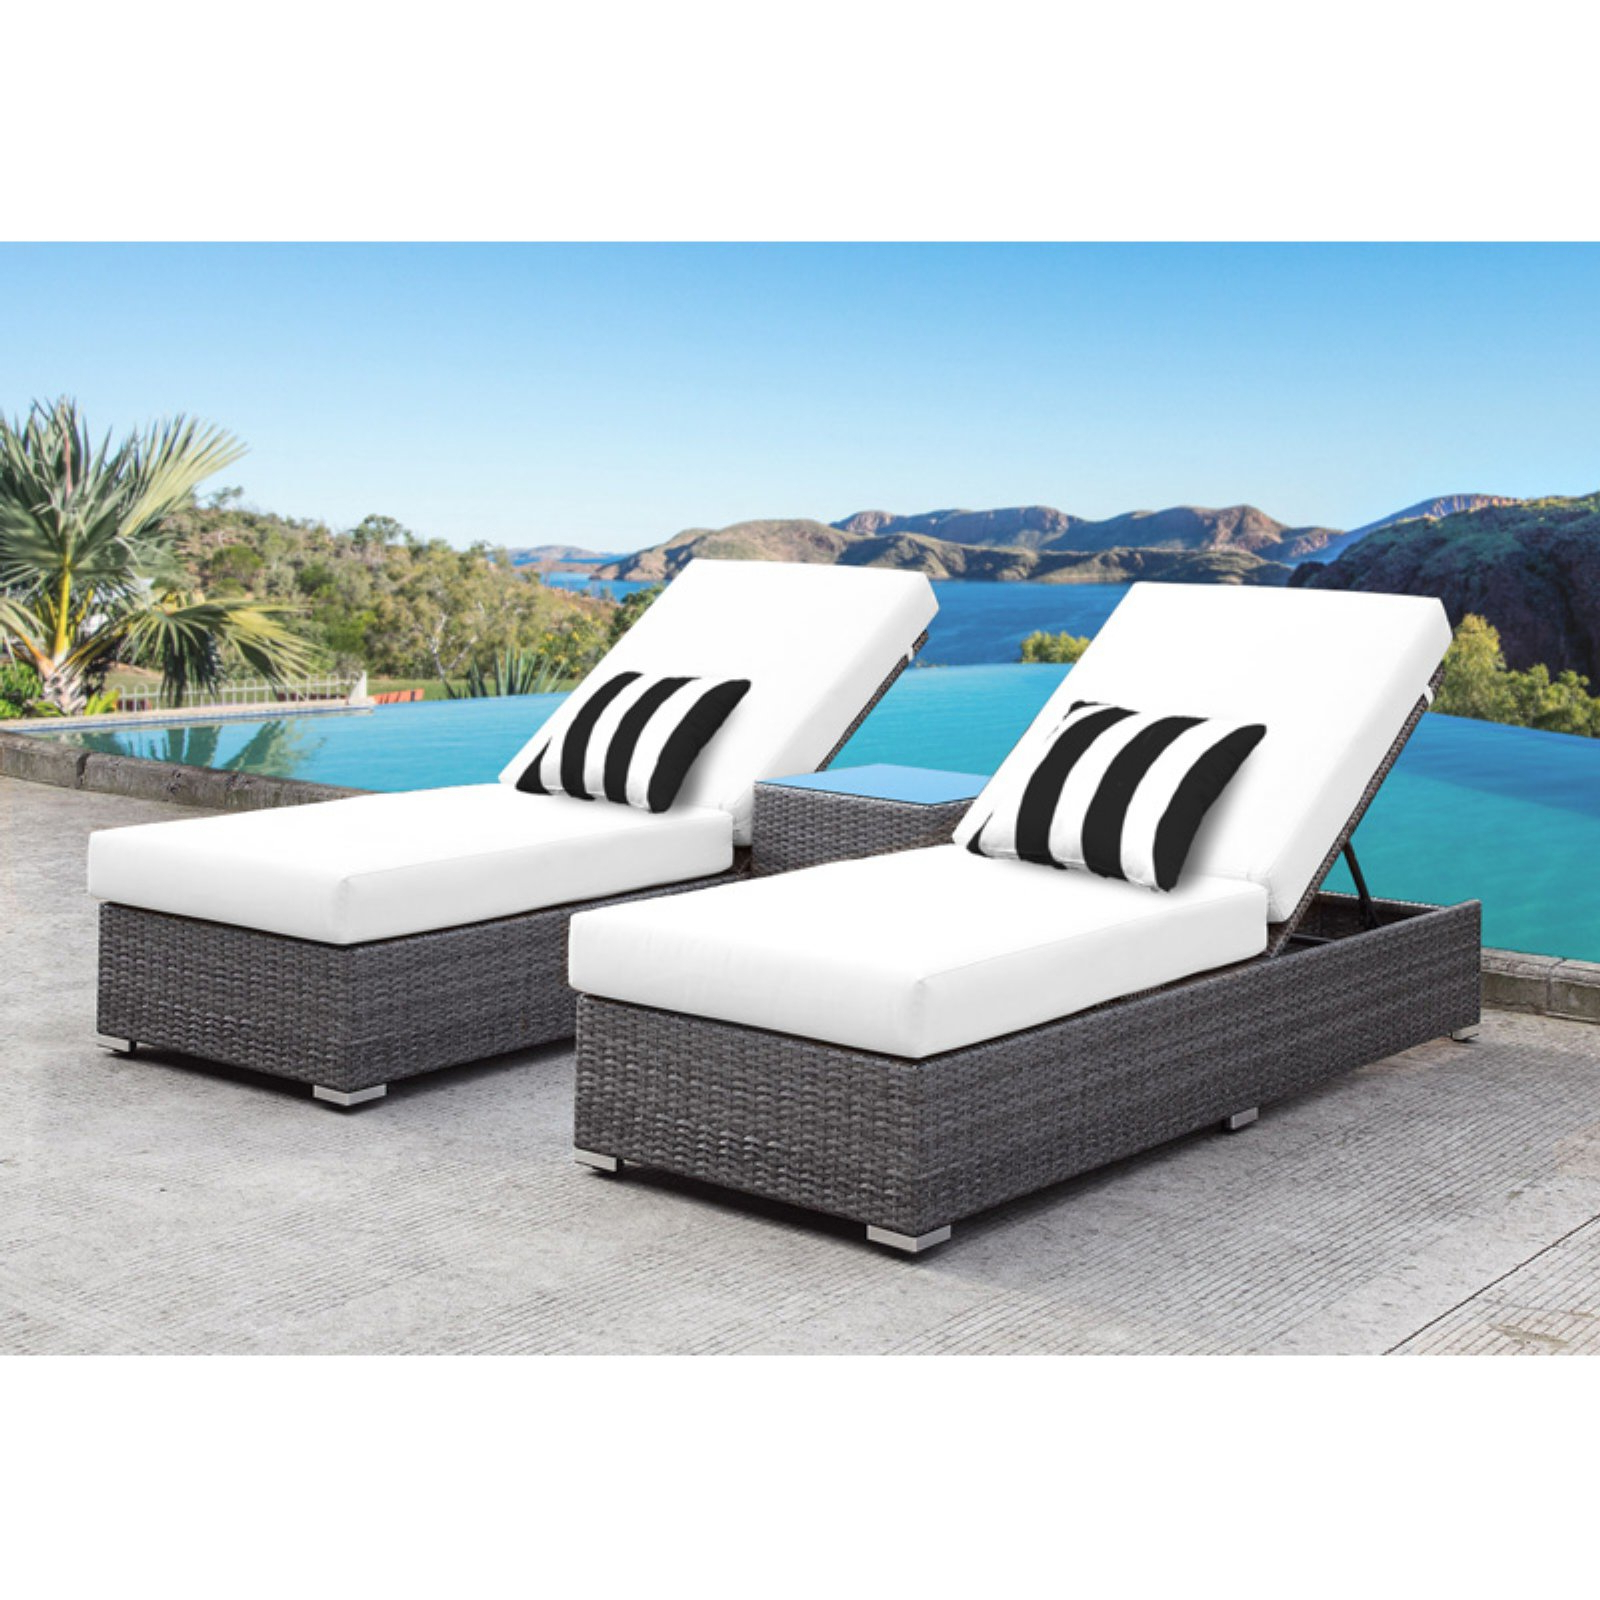 Most Up To Date Outdoor Solis Lusso Rattan Wicker 3 Piece Patio Chaise Intended For Outdoor 3 Piece Wicker Chaise Lounges And Table Sets (View 8 of 25)